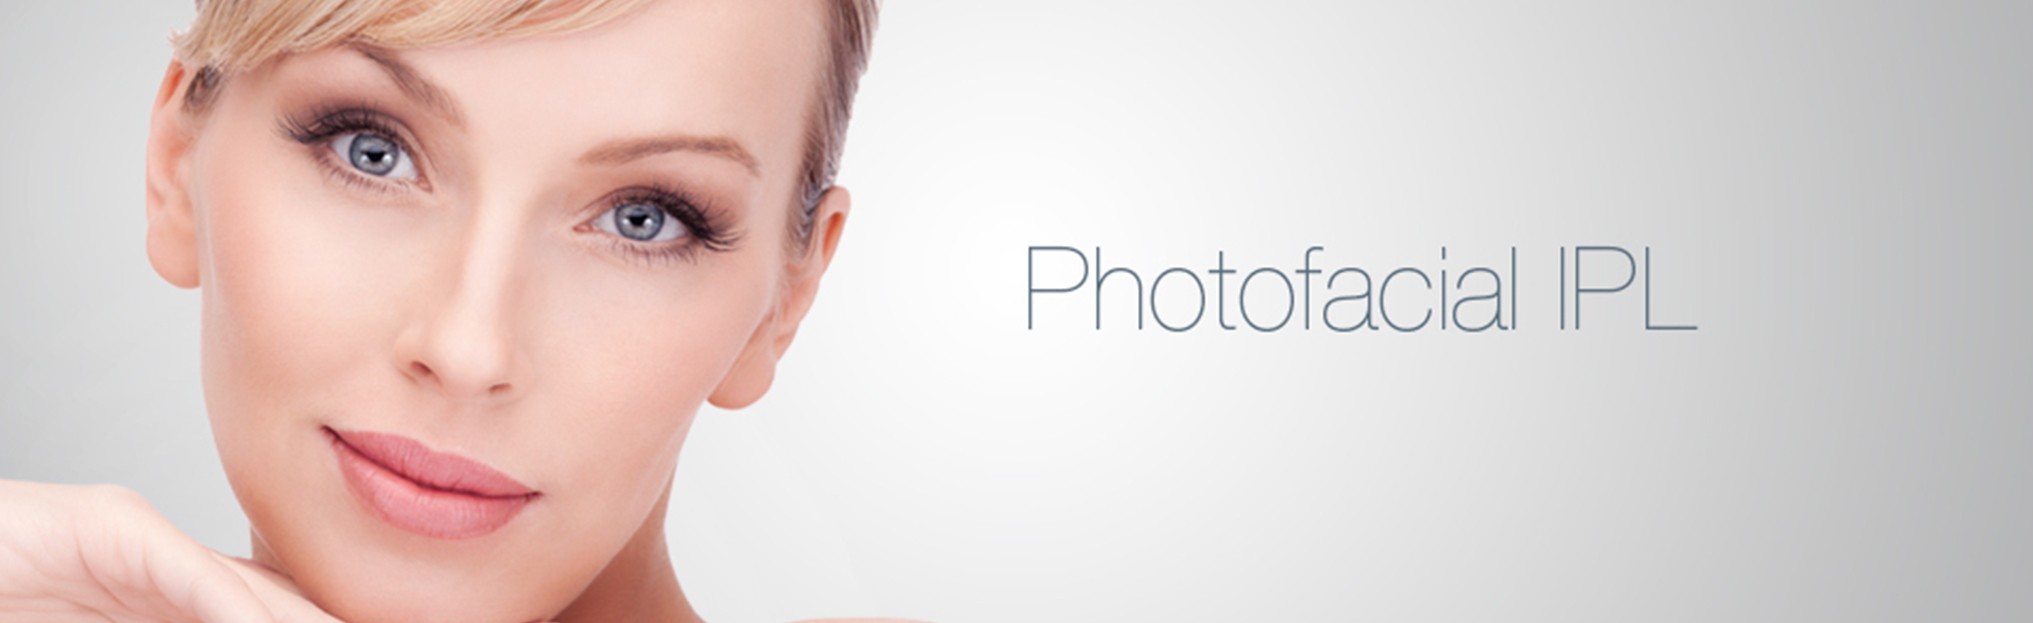 Image result for photofacial